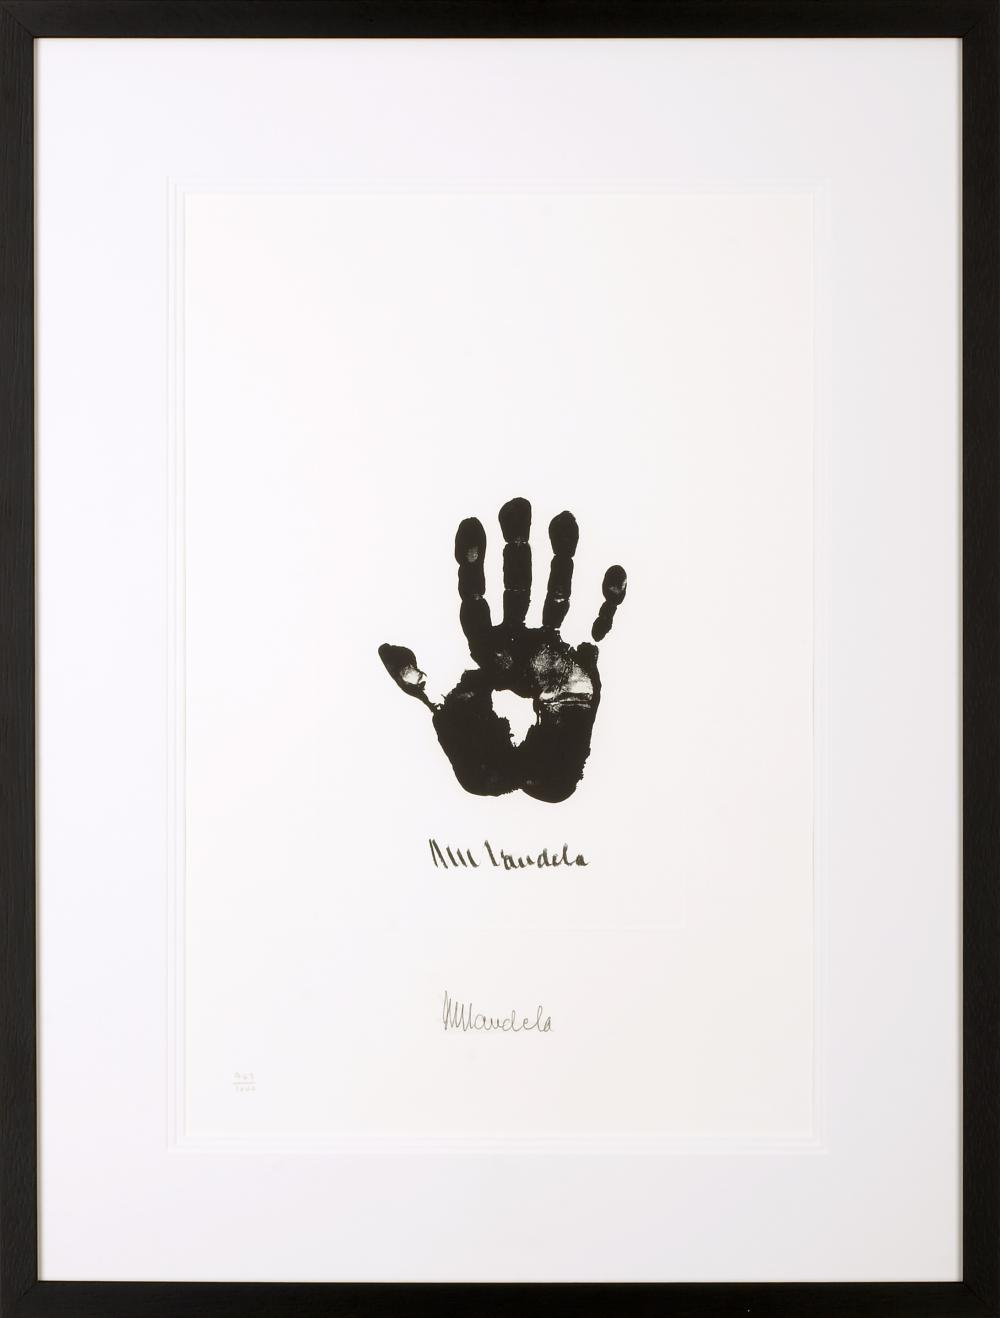 """Hand of Africa (c) Nelson Mandela, Limited edition signed lithograph, 25.5 x 21.5"""""""